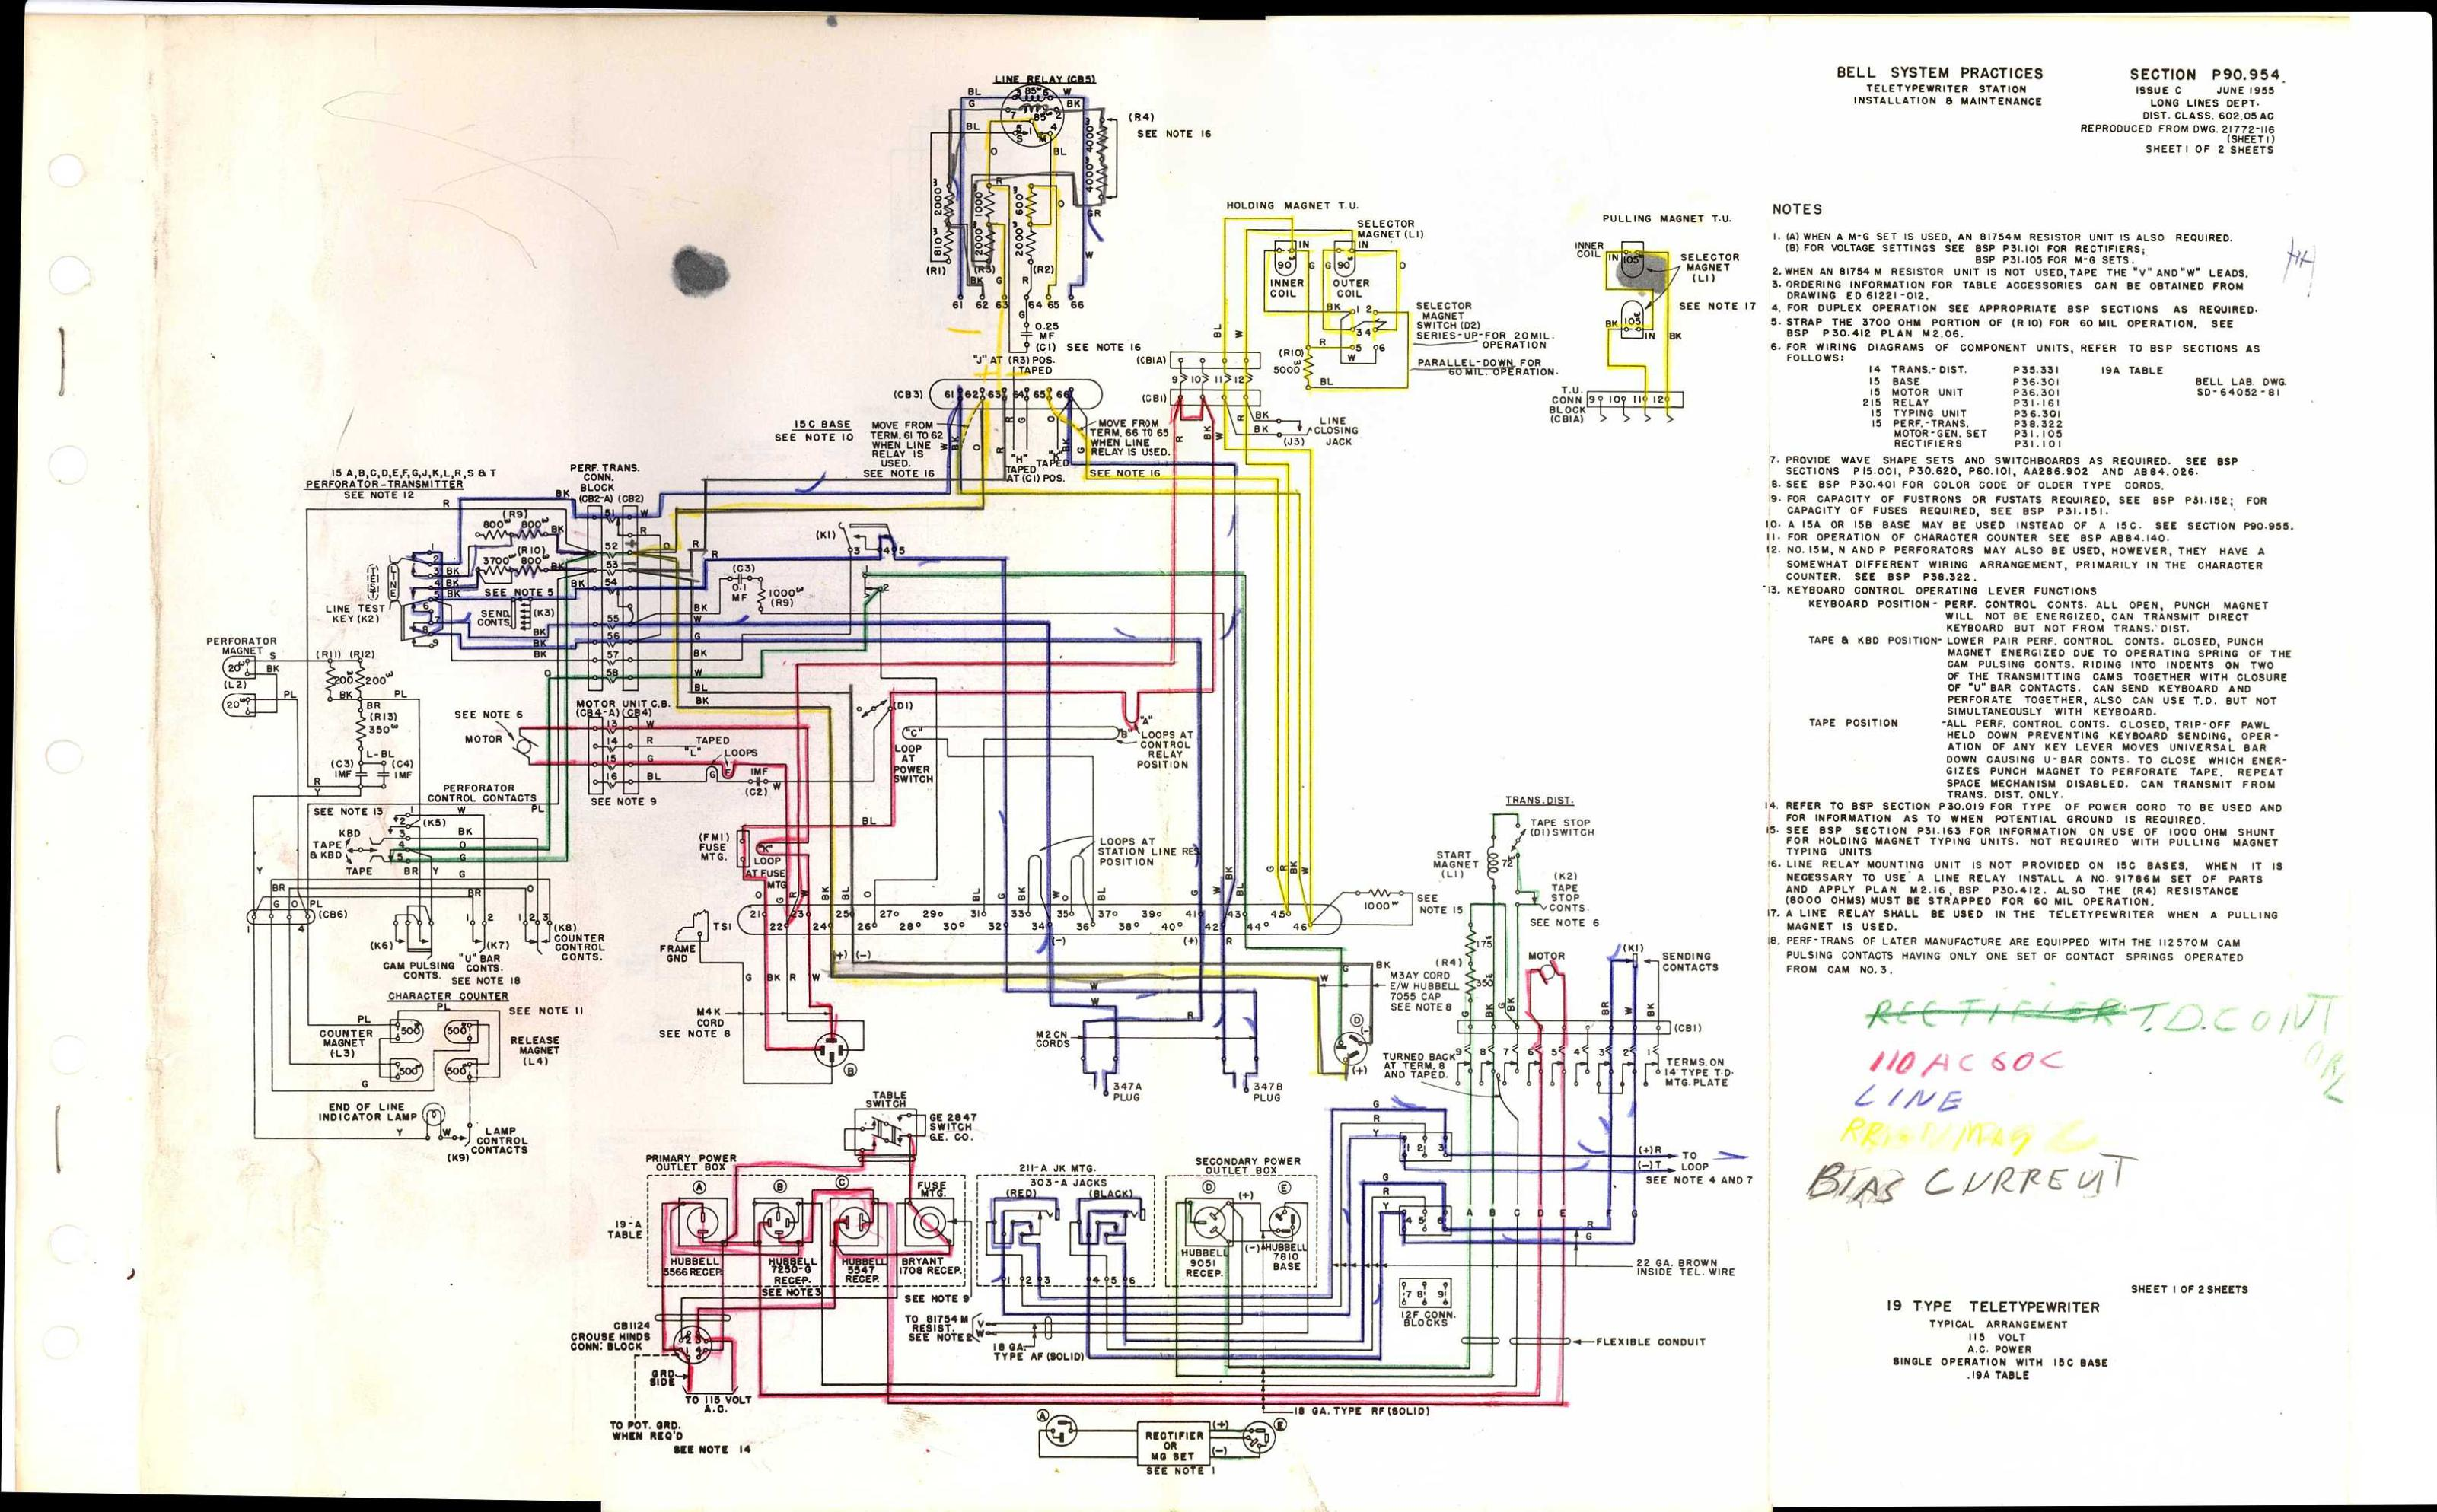 tty28 S 22c teletype wiring diagrams and schematics western electric 202 wiring diagram at bakdesigns.co